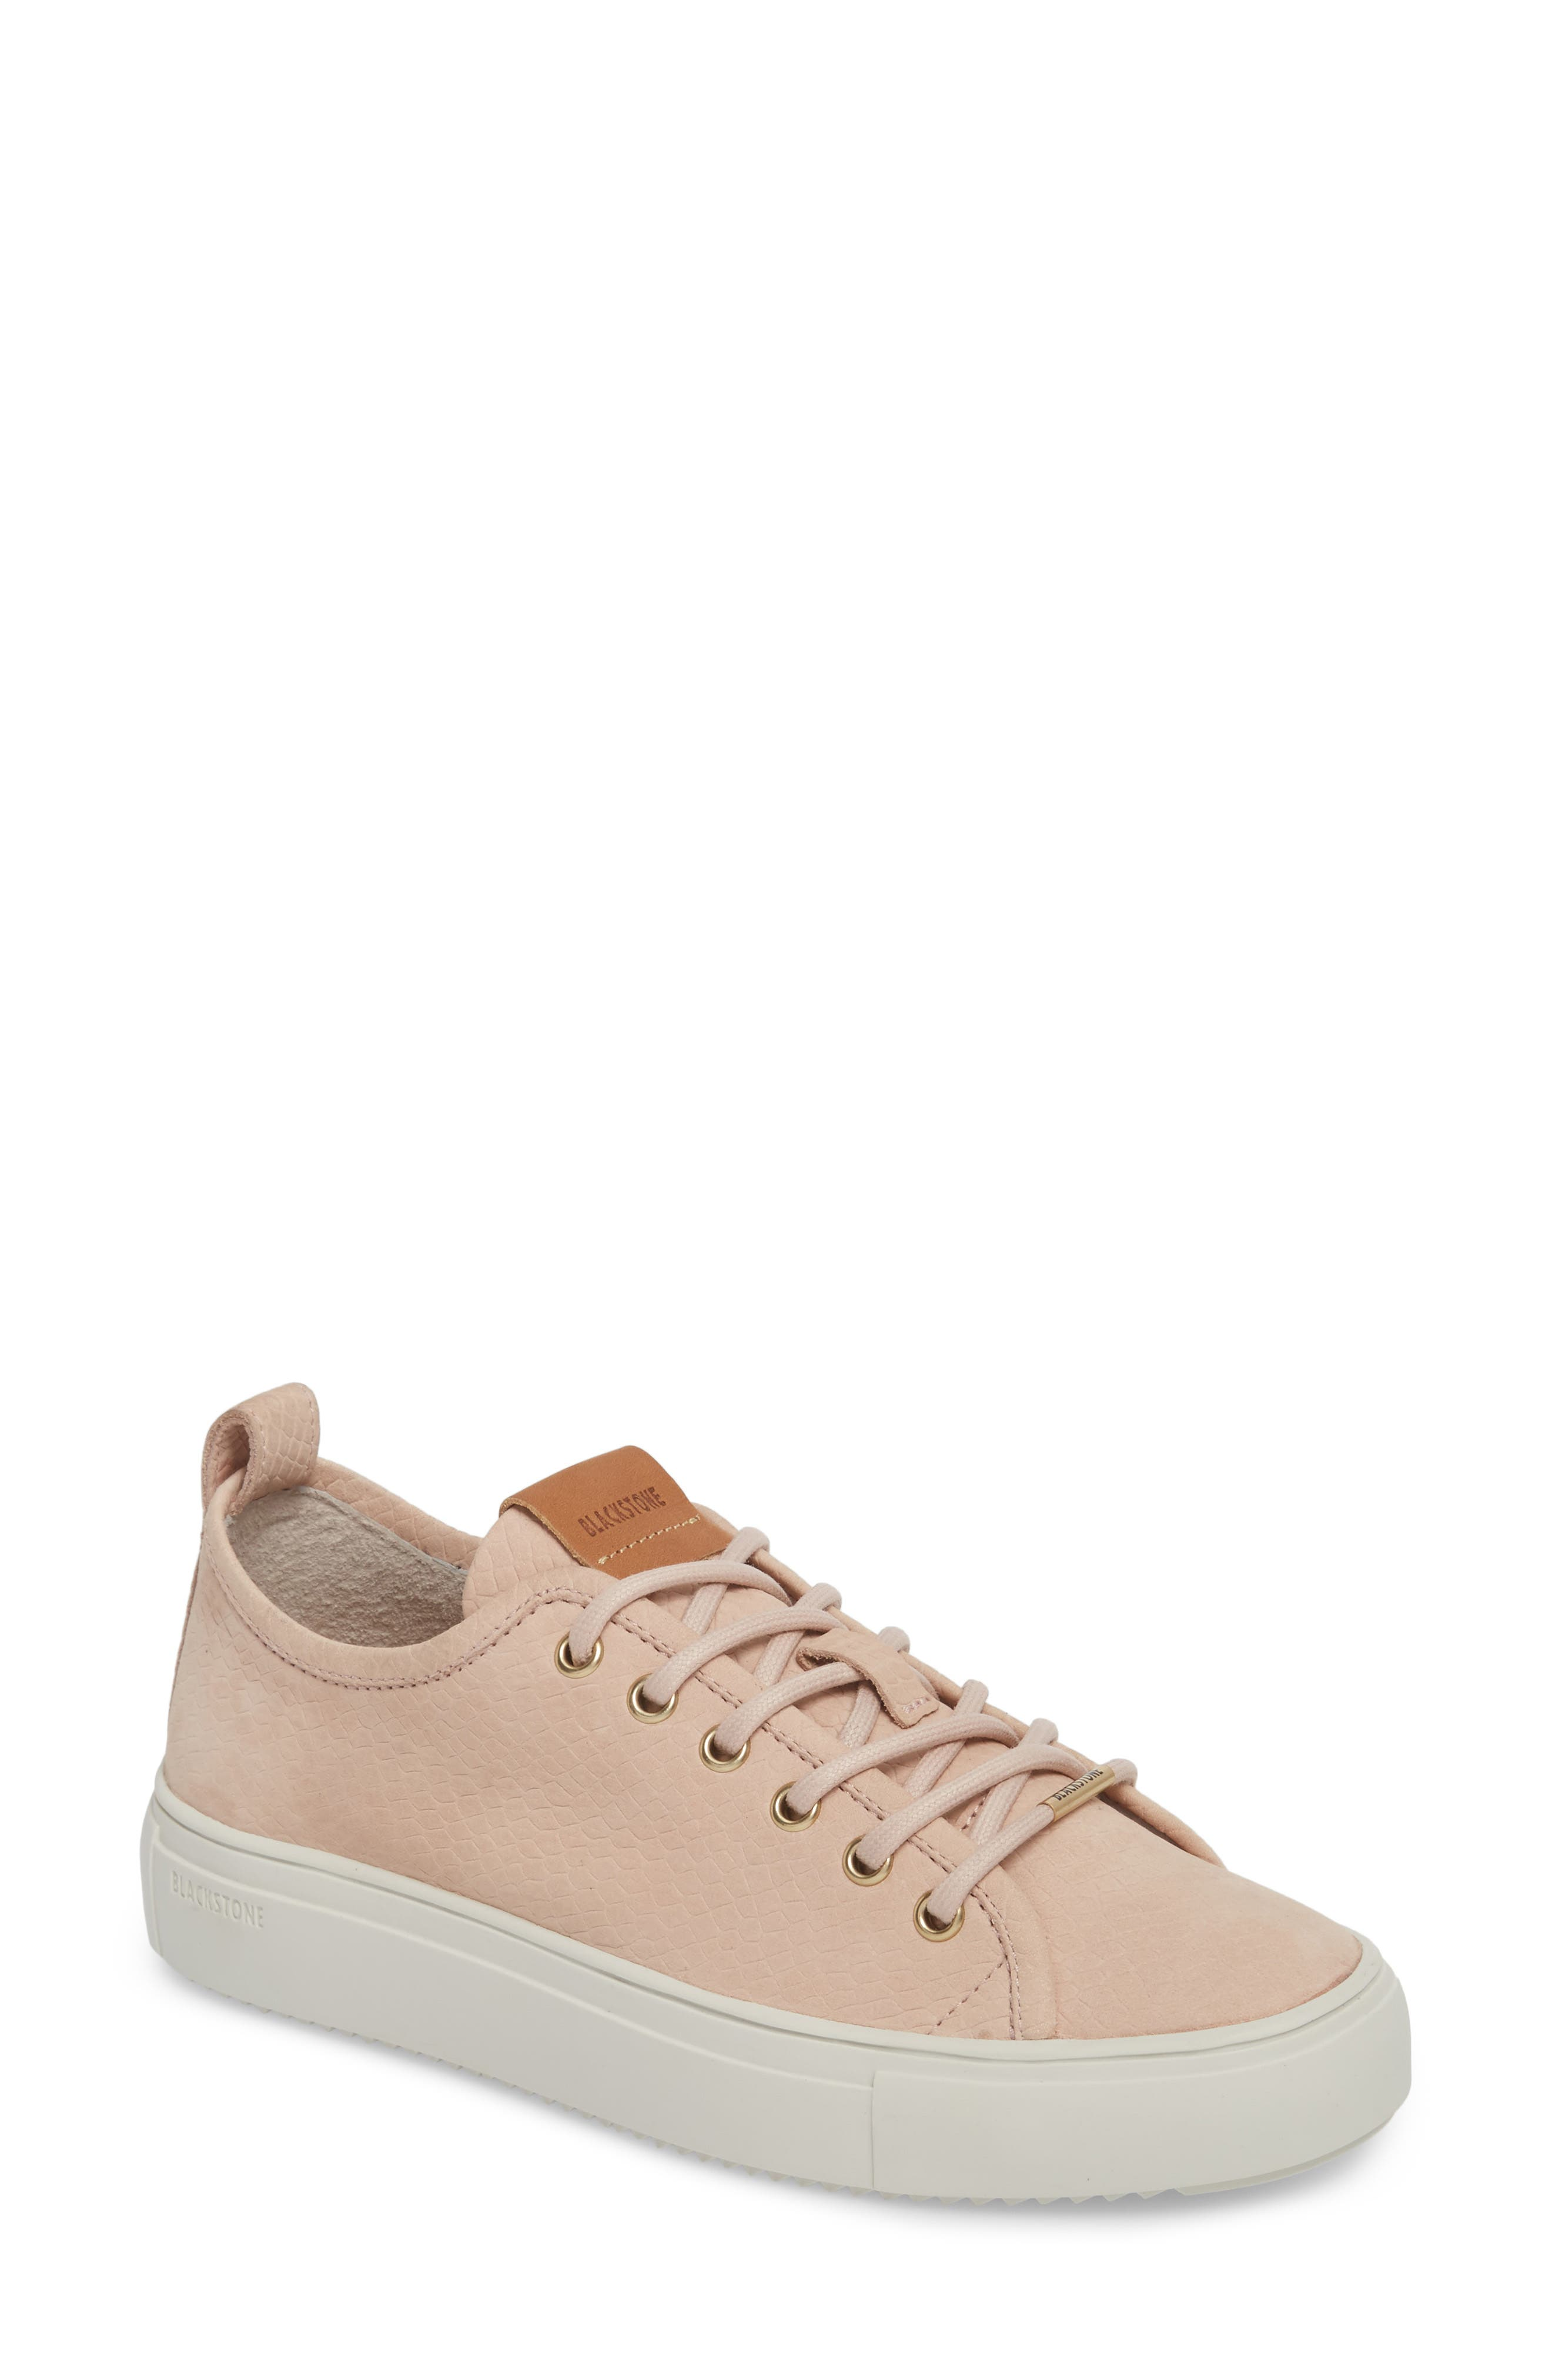 PL90 Sneaker,                             Main thumbnail 1, color,                             Rose Dust Leather